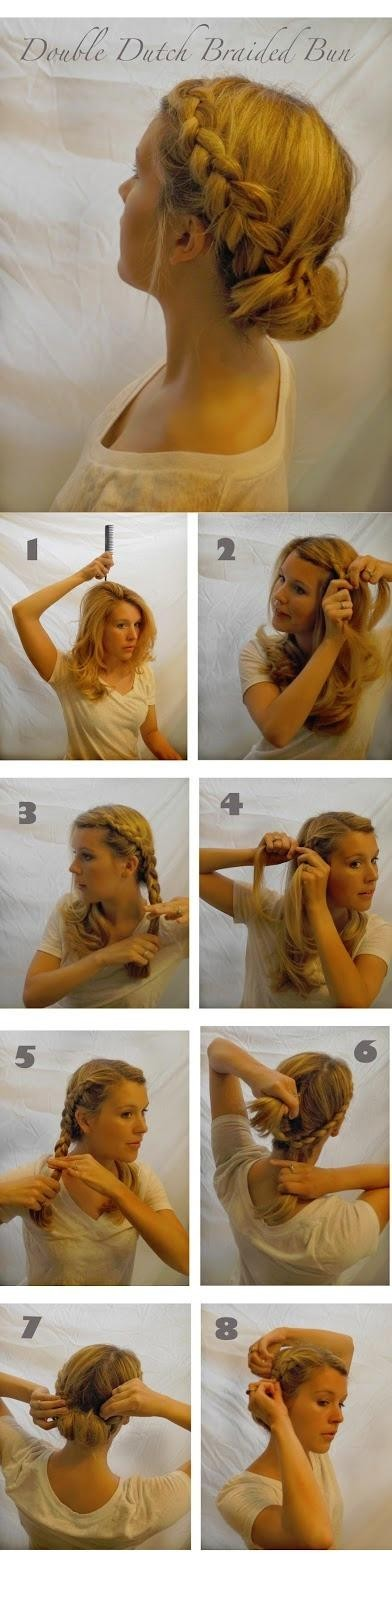 Updo Hairstyle Tutorial: Double Dutch Braided Bun Updos